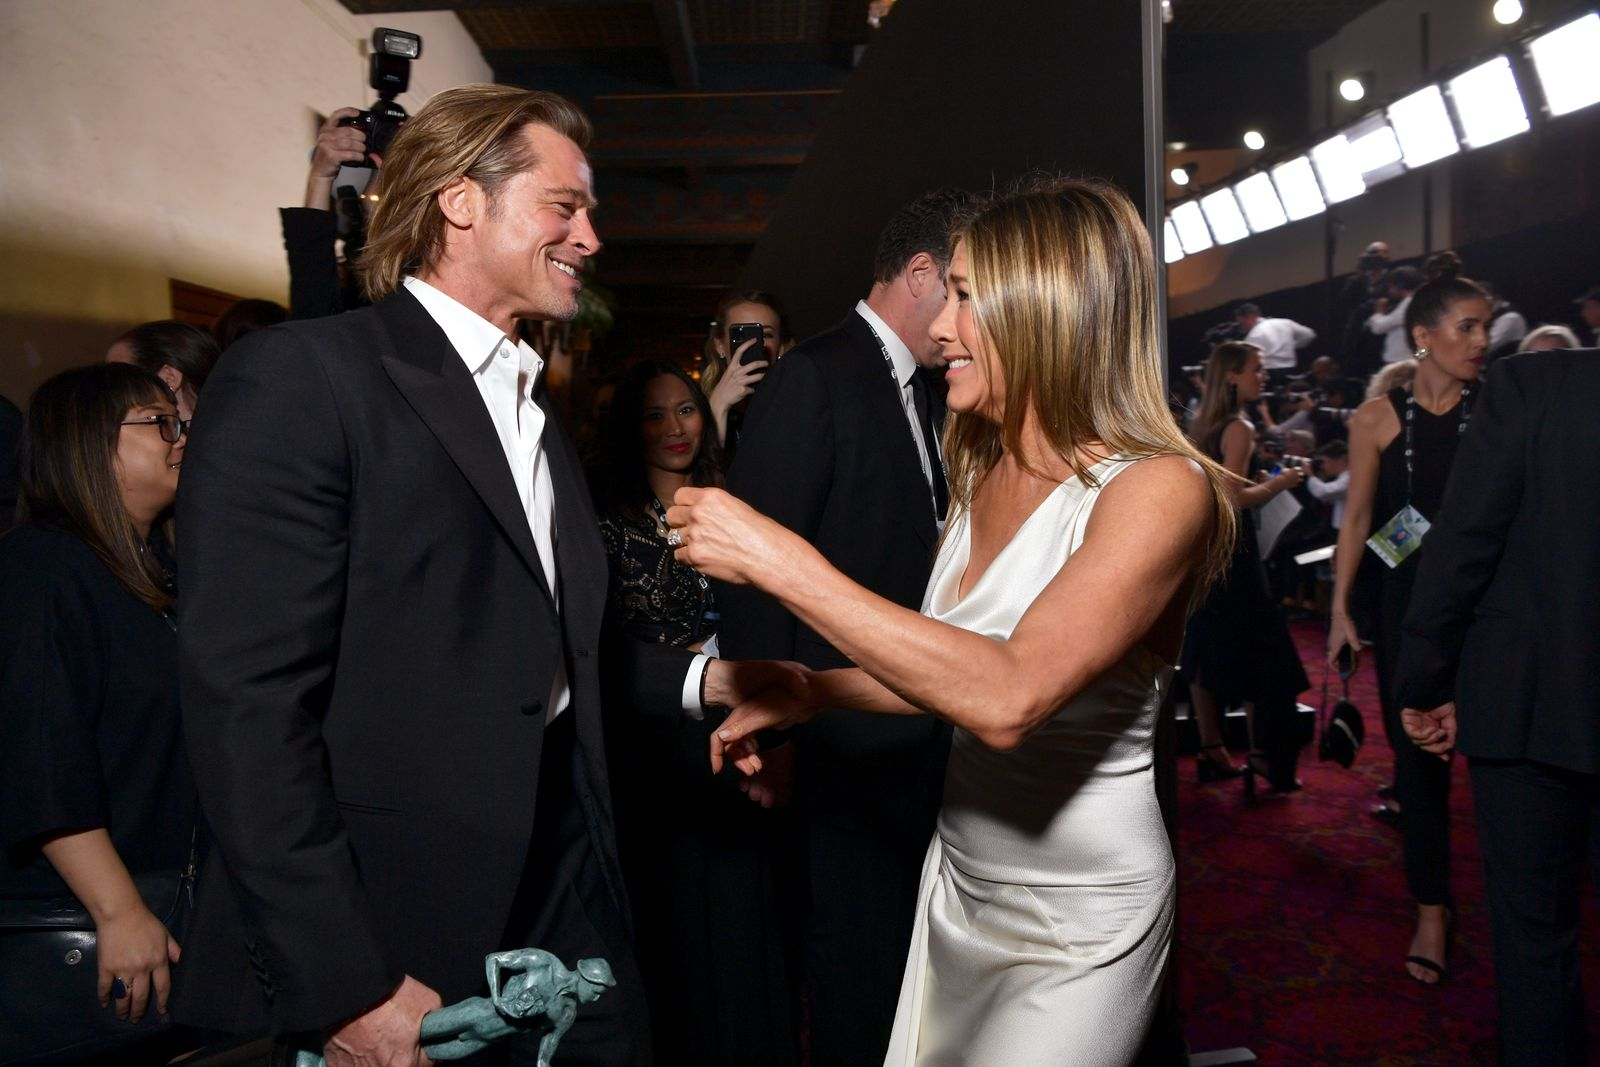 Brad Pitt and Jennifer Aniston at the 26th Annual Screen ActorsGuild Awards at The Shrine Auditorium on January 19, 2020 | Photo: Getty Images